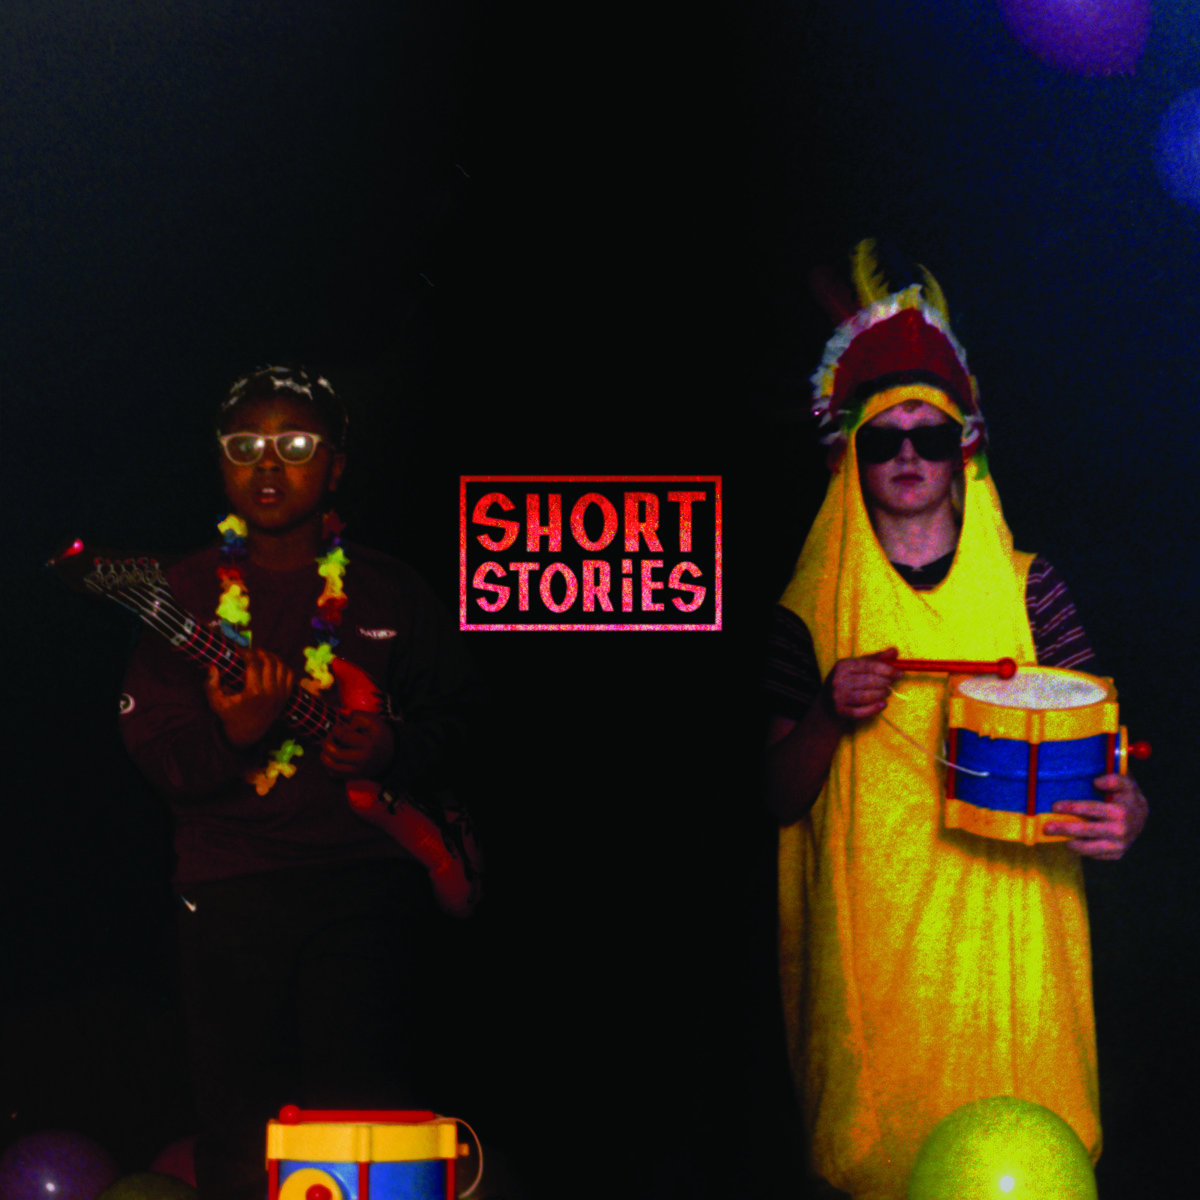 Short Stories - On The Way